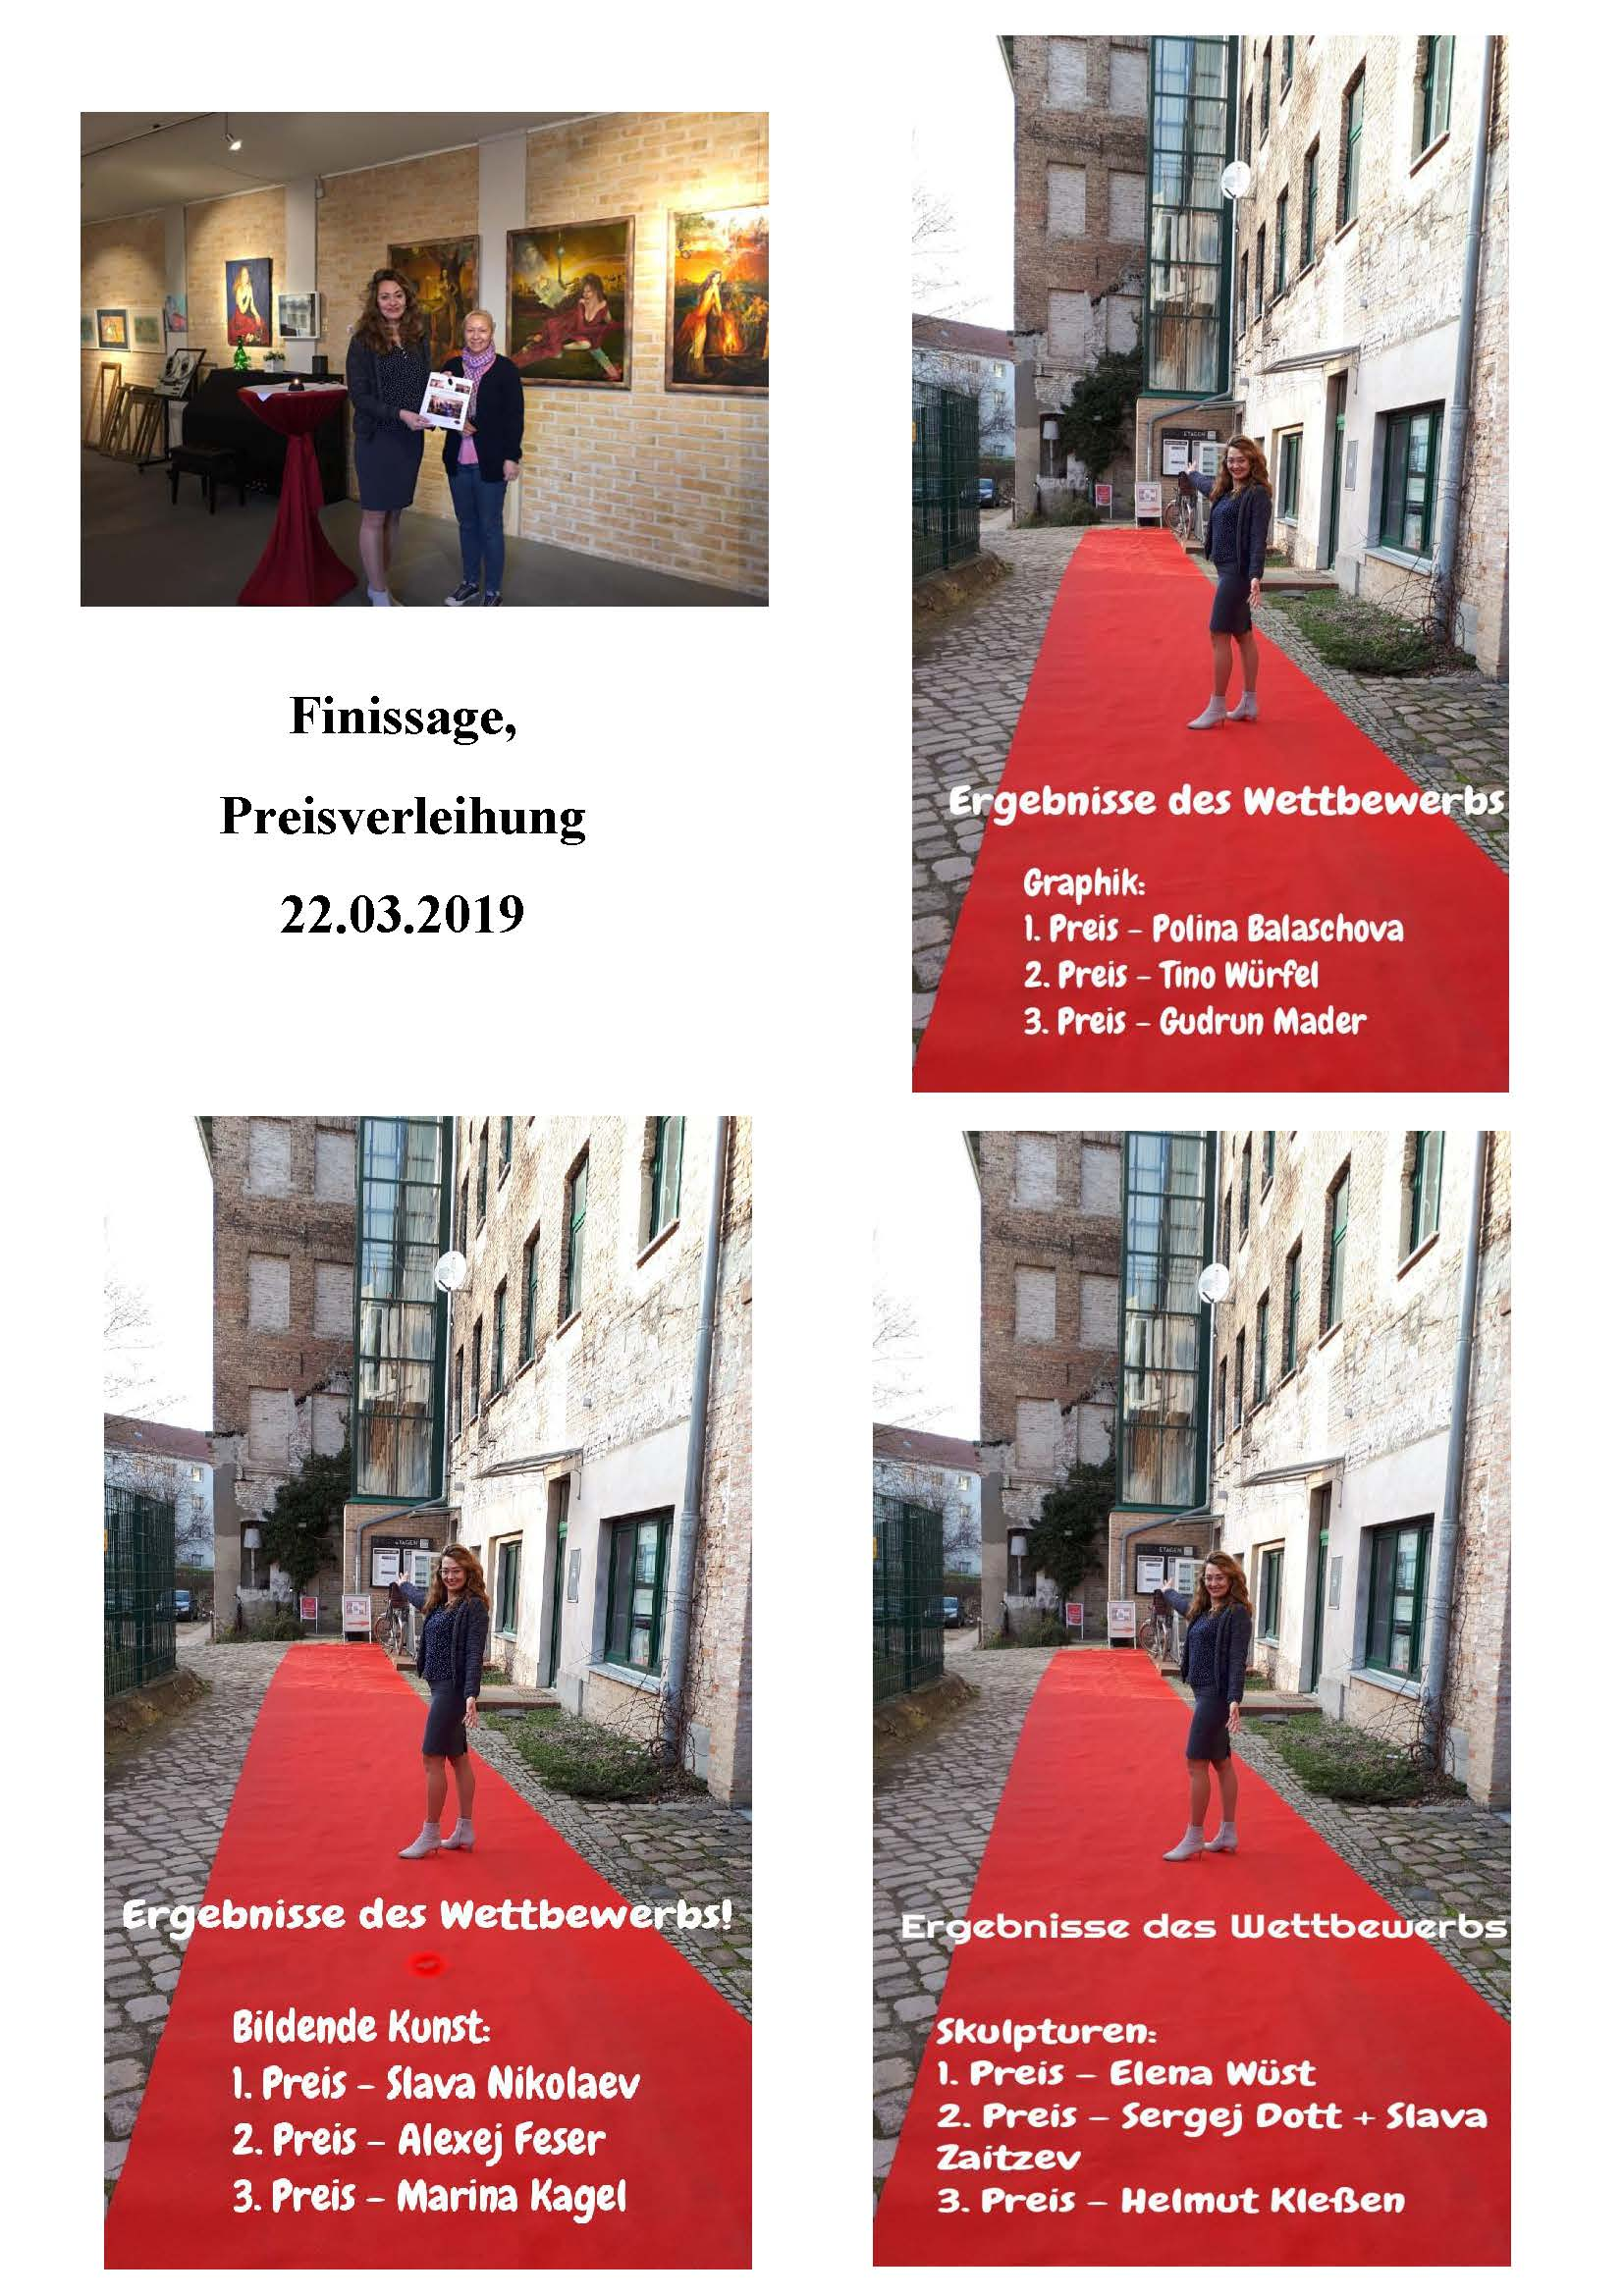 Finissage, Erotik, 2019